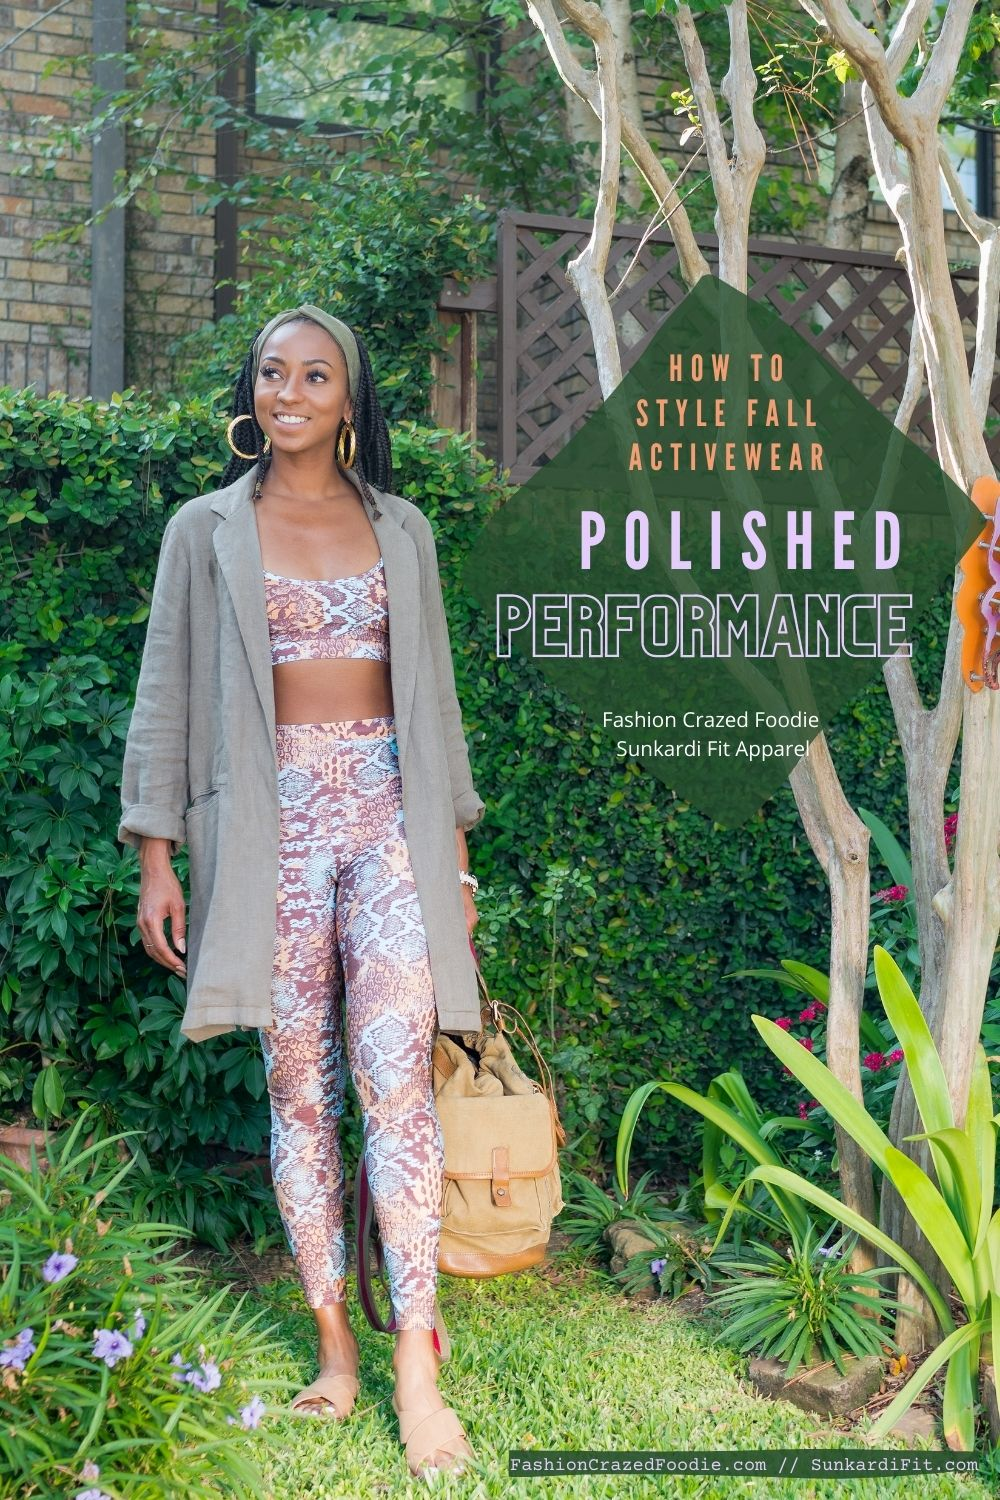 FashionCrazedFoodie Styles Fall Activewear Looks with Sunkardi Fit Apparel